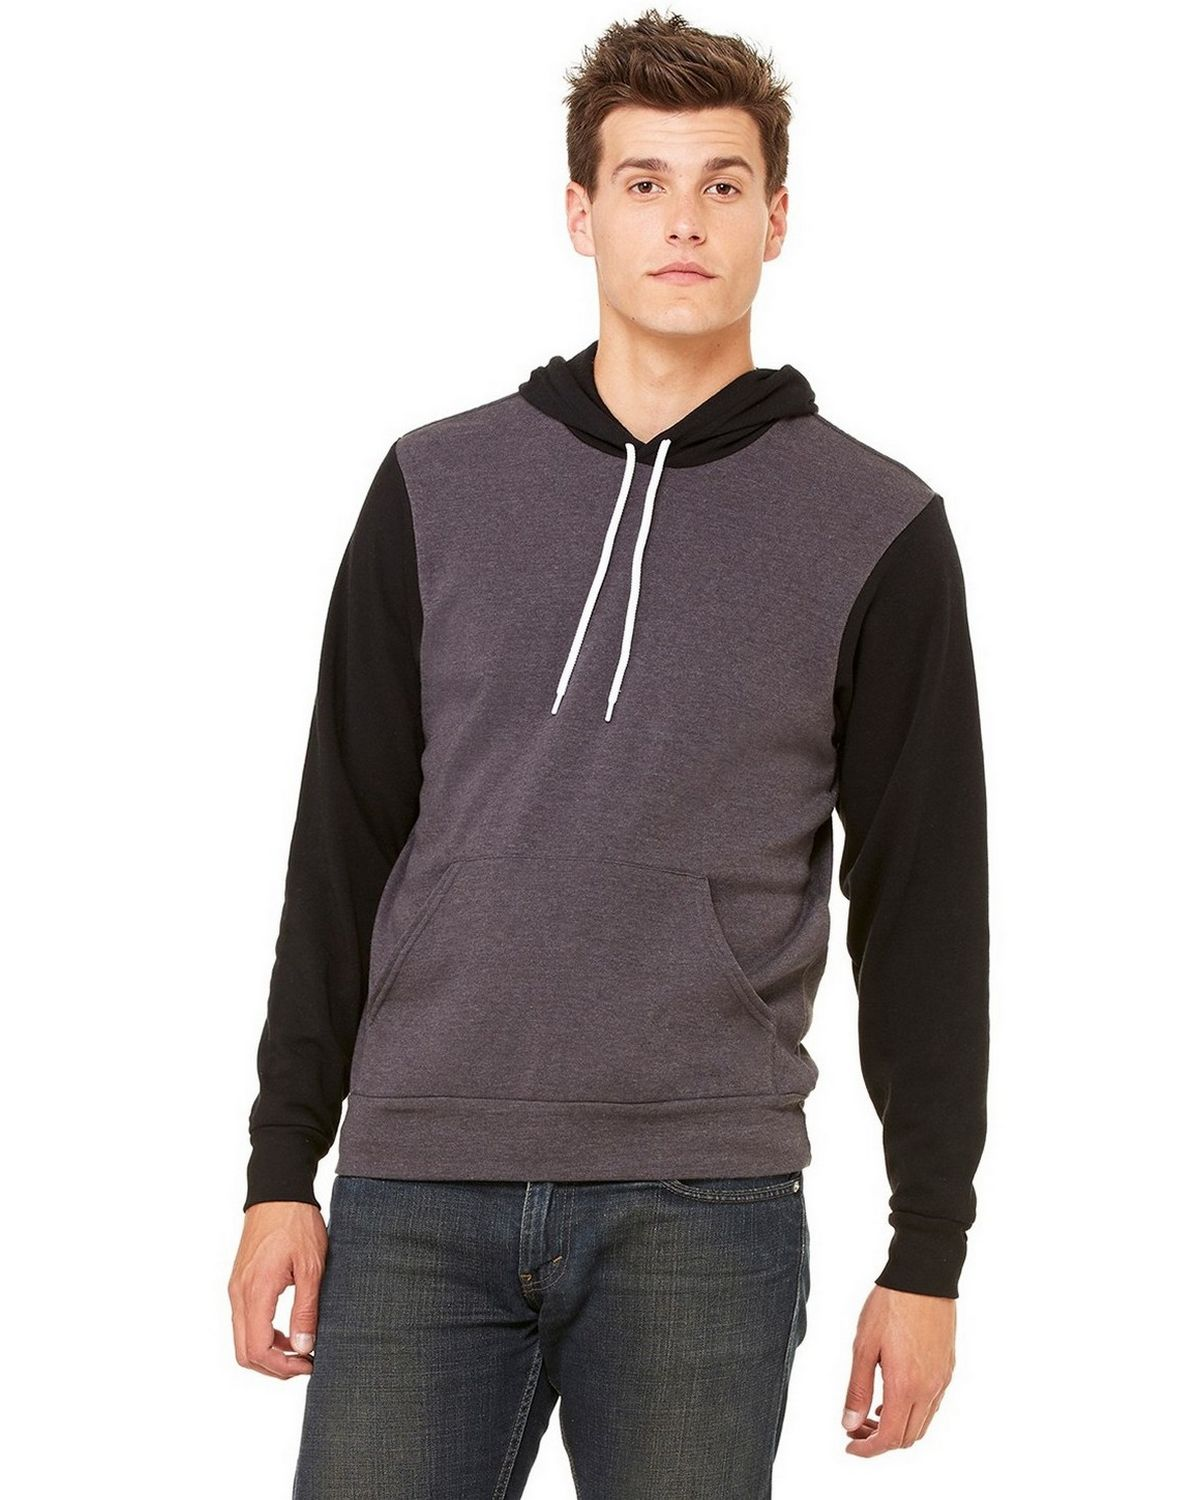 Bella + Canvas 3719 Unisex Poly Cotton Fleece Pullover Hoodie - Dark Grey Heather/Black - XS 3719